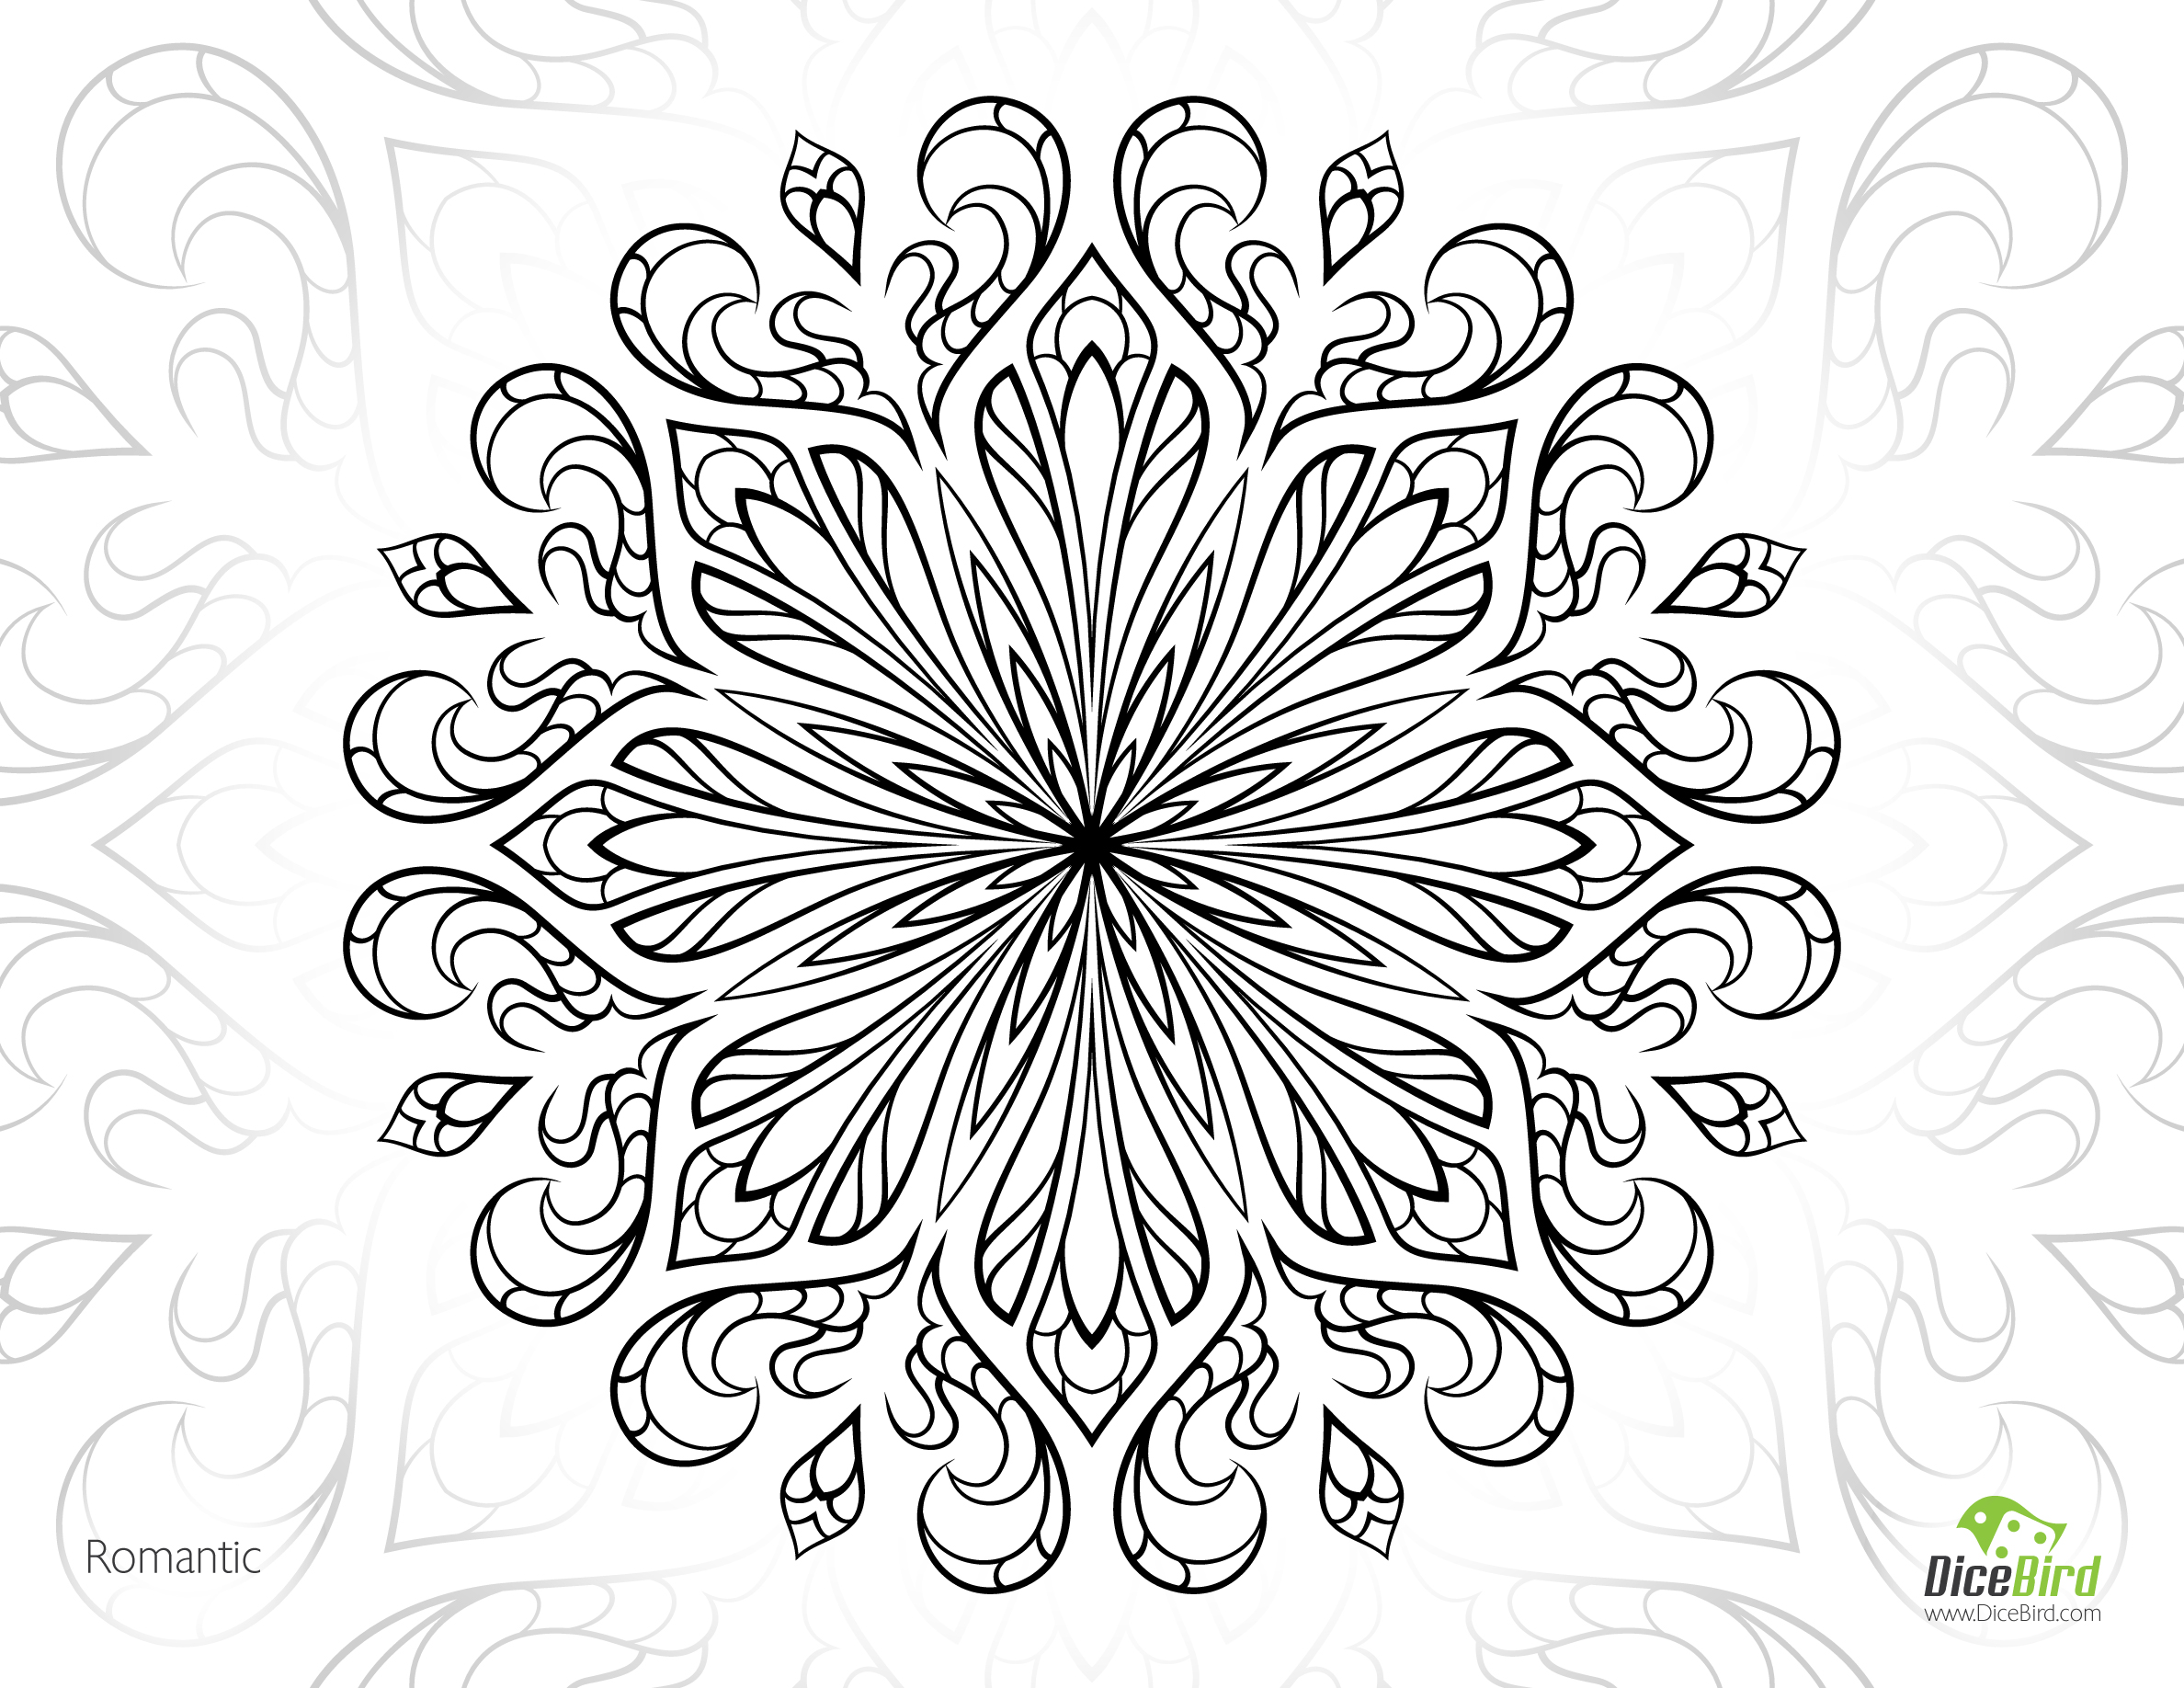 2376x1836 Free Printable Advanced Coloring Pages For Adults